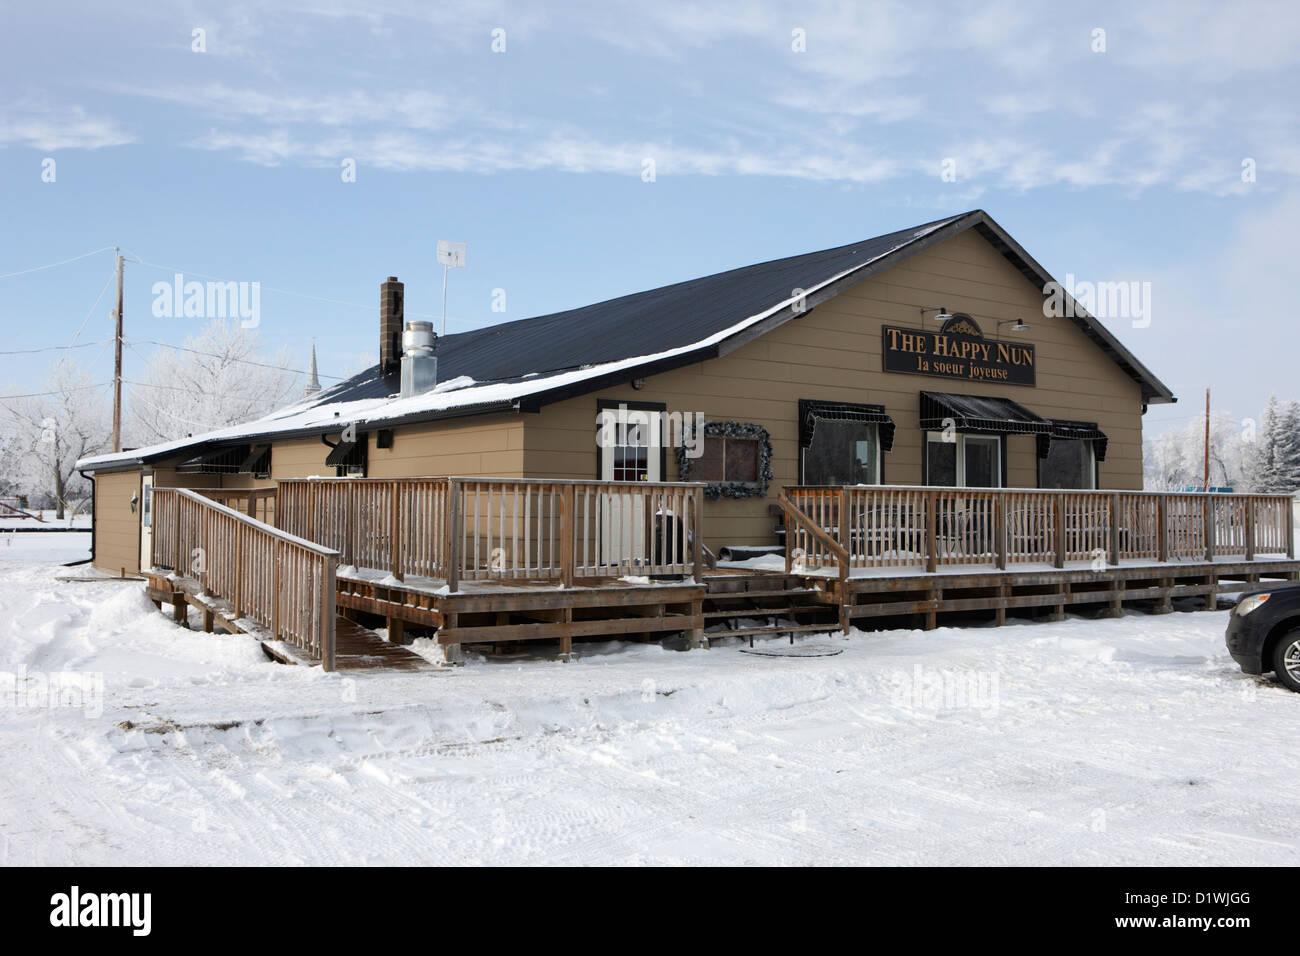 the happy nun cafe and music venue Forget Saskatchewan Canada - Stock Image